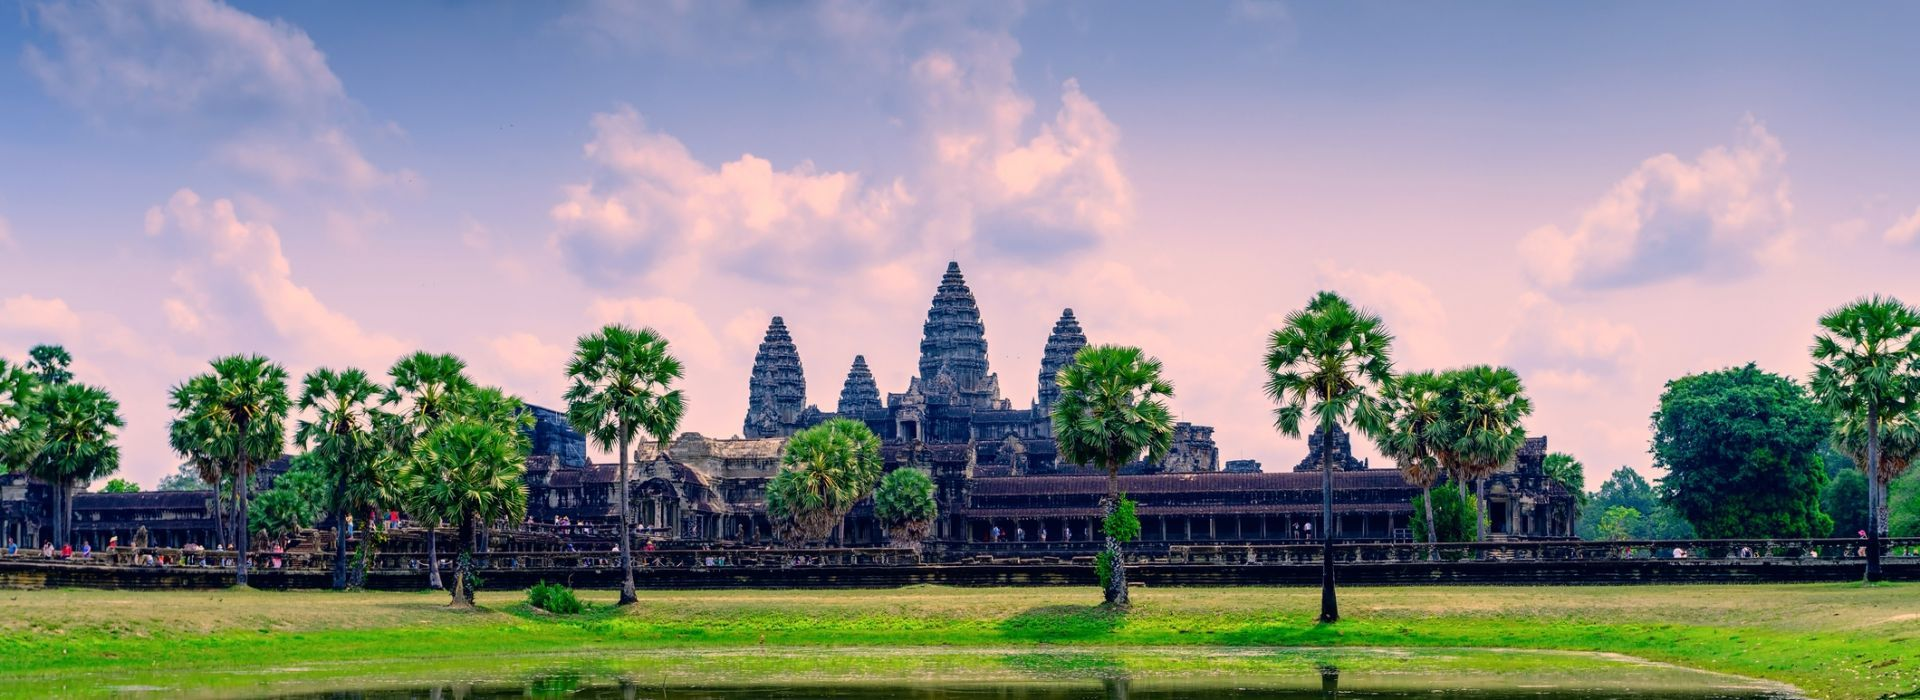 Wildlife, landscapes and nature Tours in Siem Reap